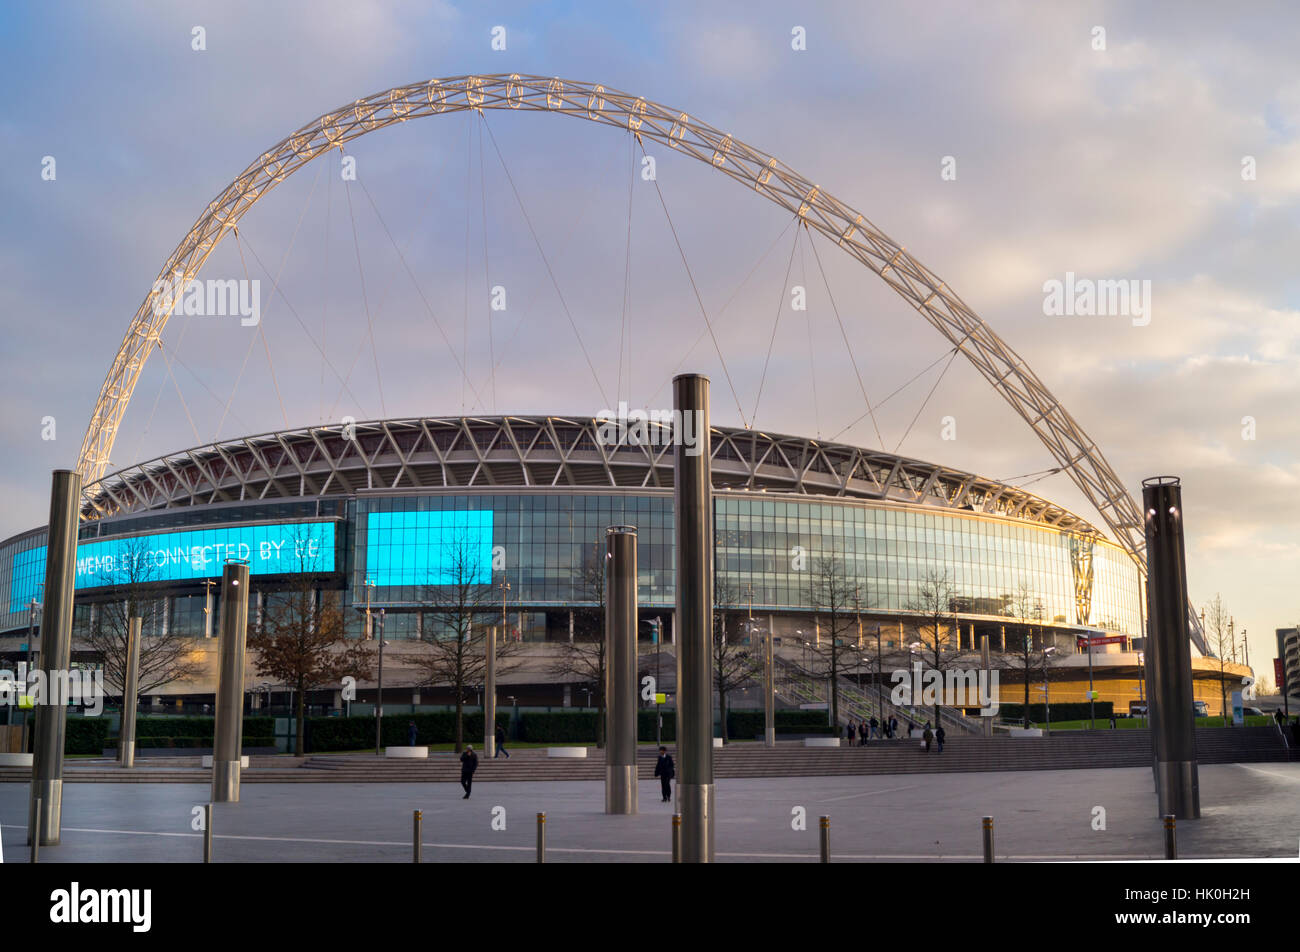 Wembley Stadium Arch, London, England, United Kingdom - Stock Image